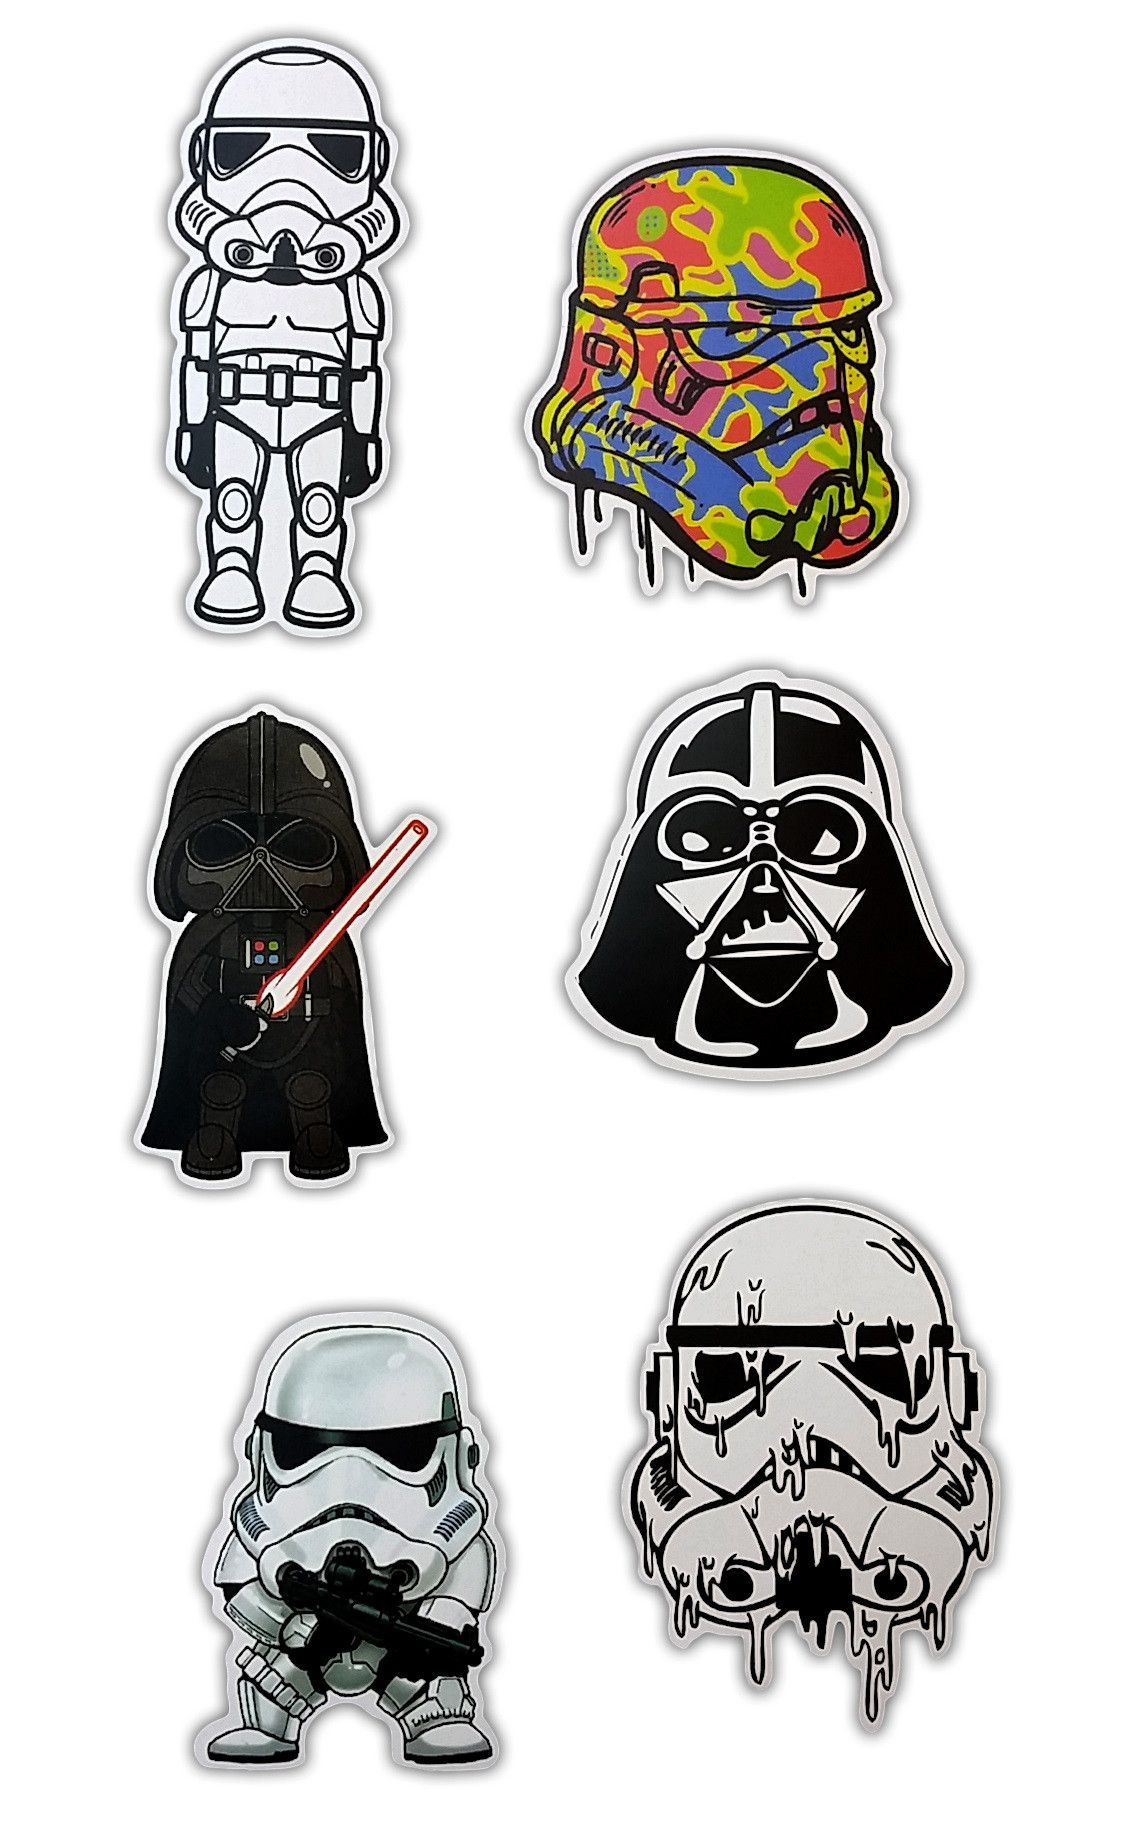 Stars wars darth vader skateboard stickers set of 6 stickers